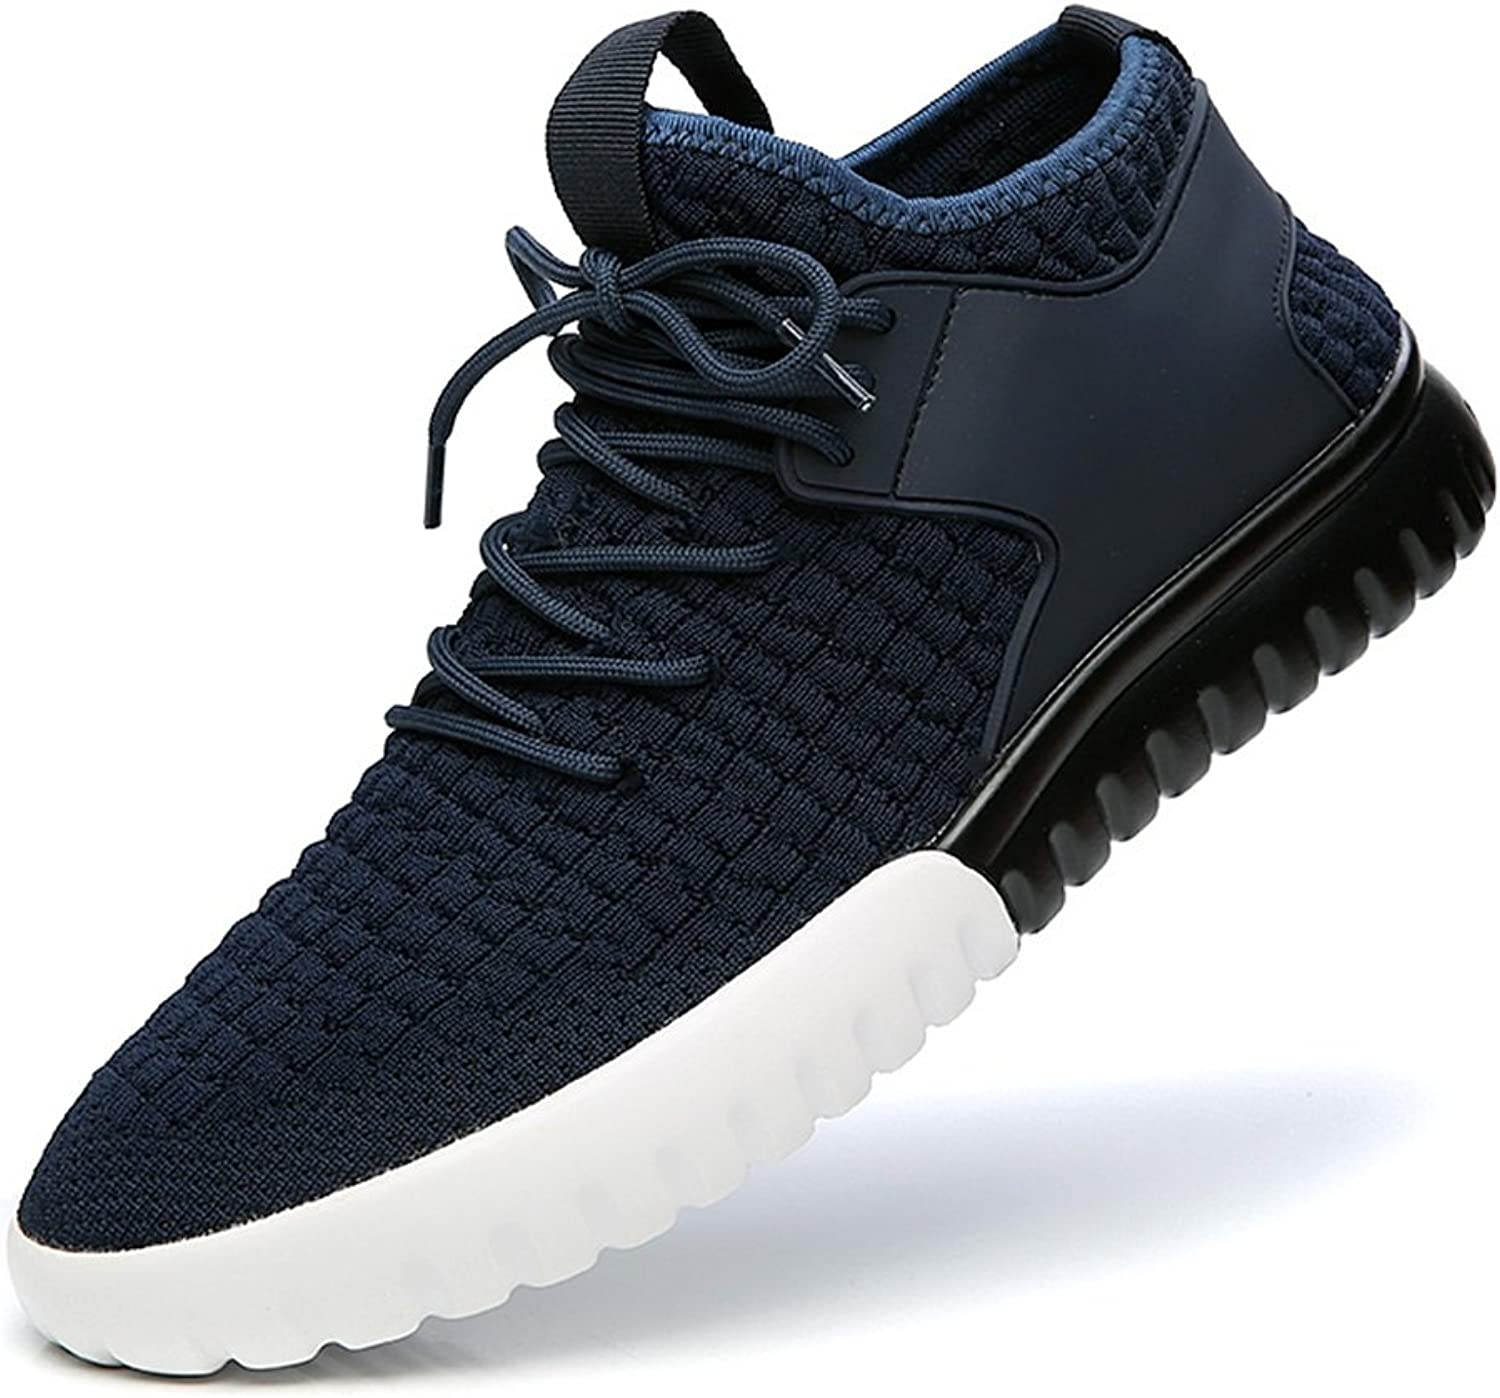 YIXINY 888474 Spring And Autumn Breathable Wear-resistant Outdoor Fashion Casual Men's shoes (color   bluee, Size   EU41 UK7.5-8 CN42)